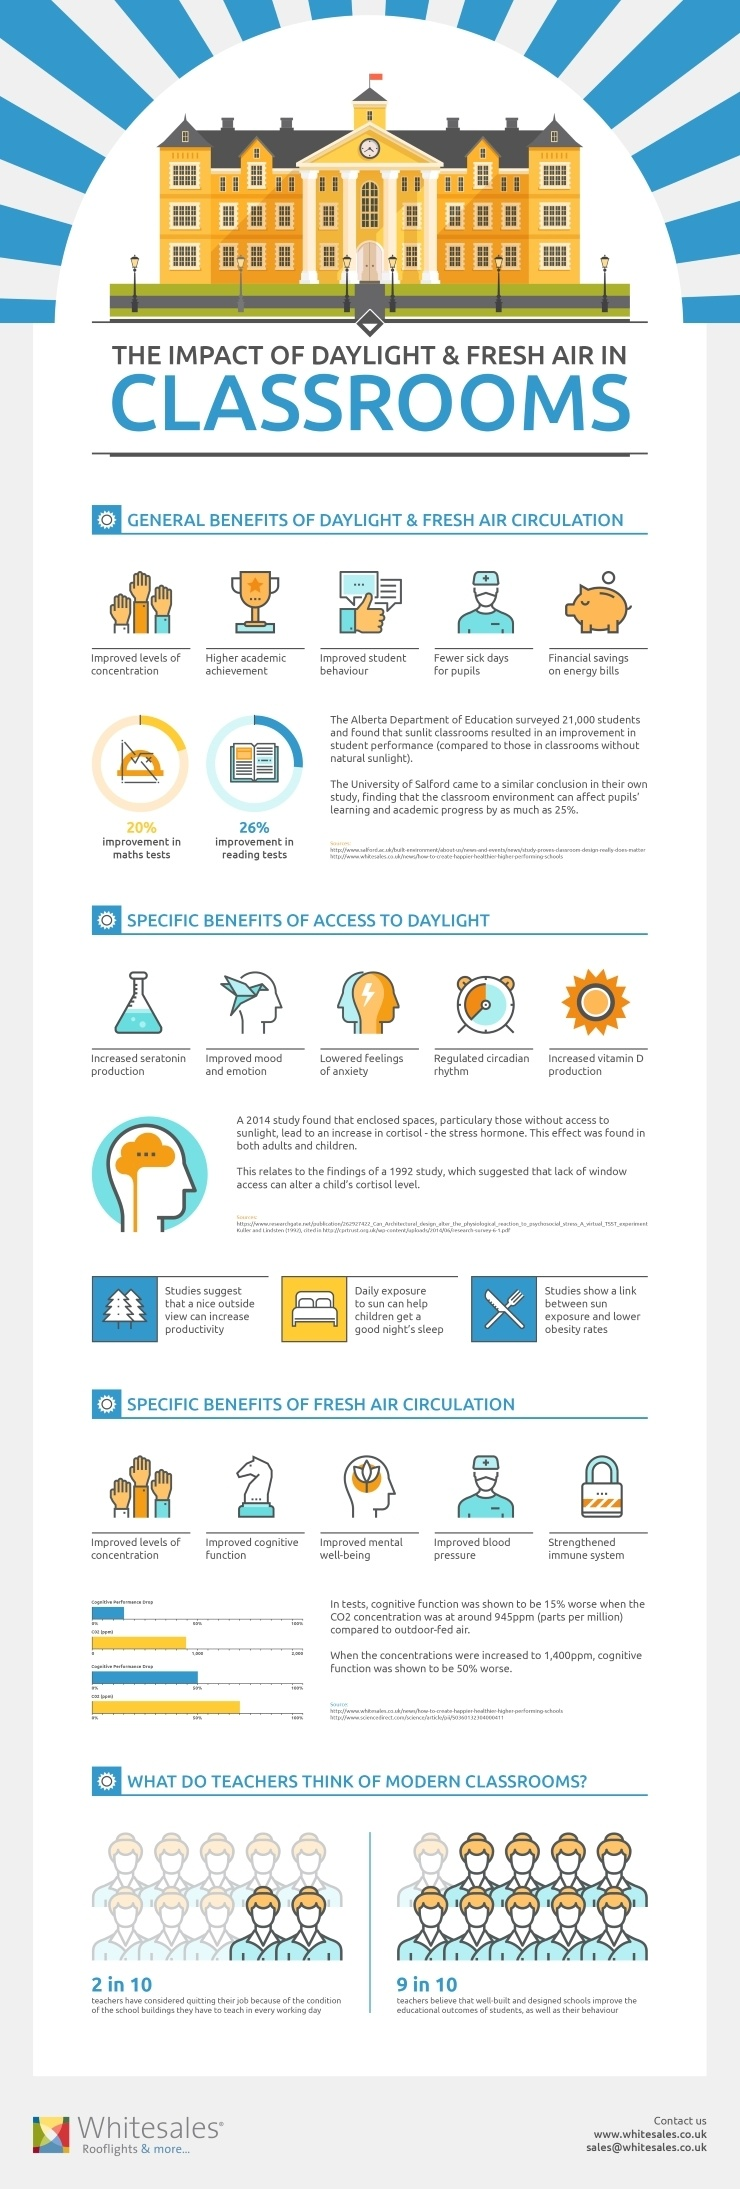 The Importance of Daylight and Fresh Air in the Classroom Infographic